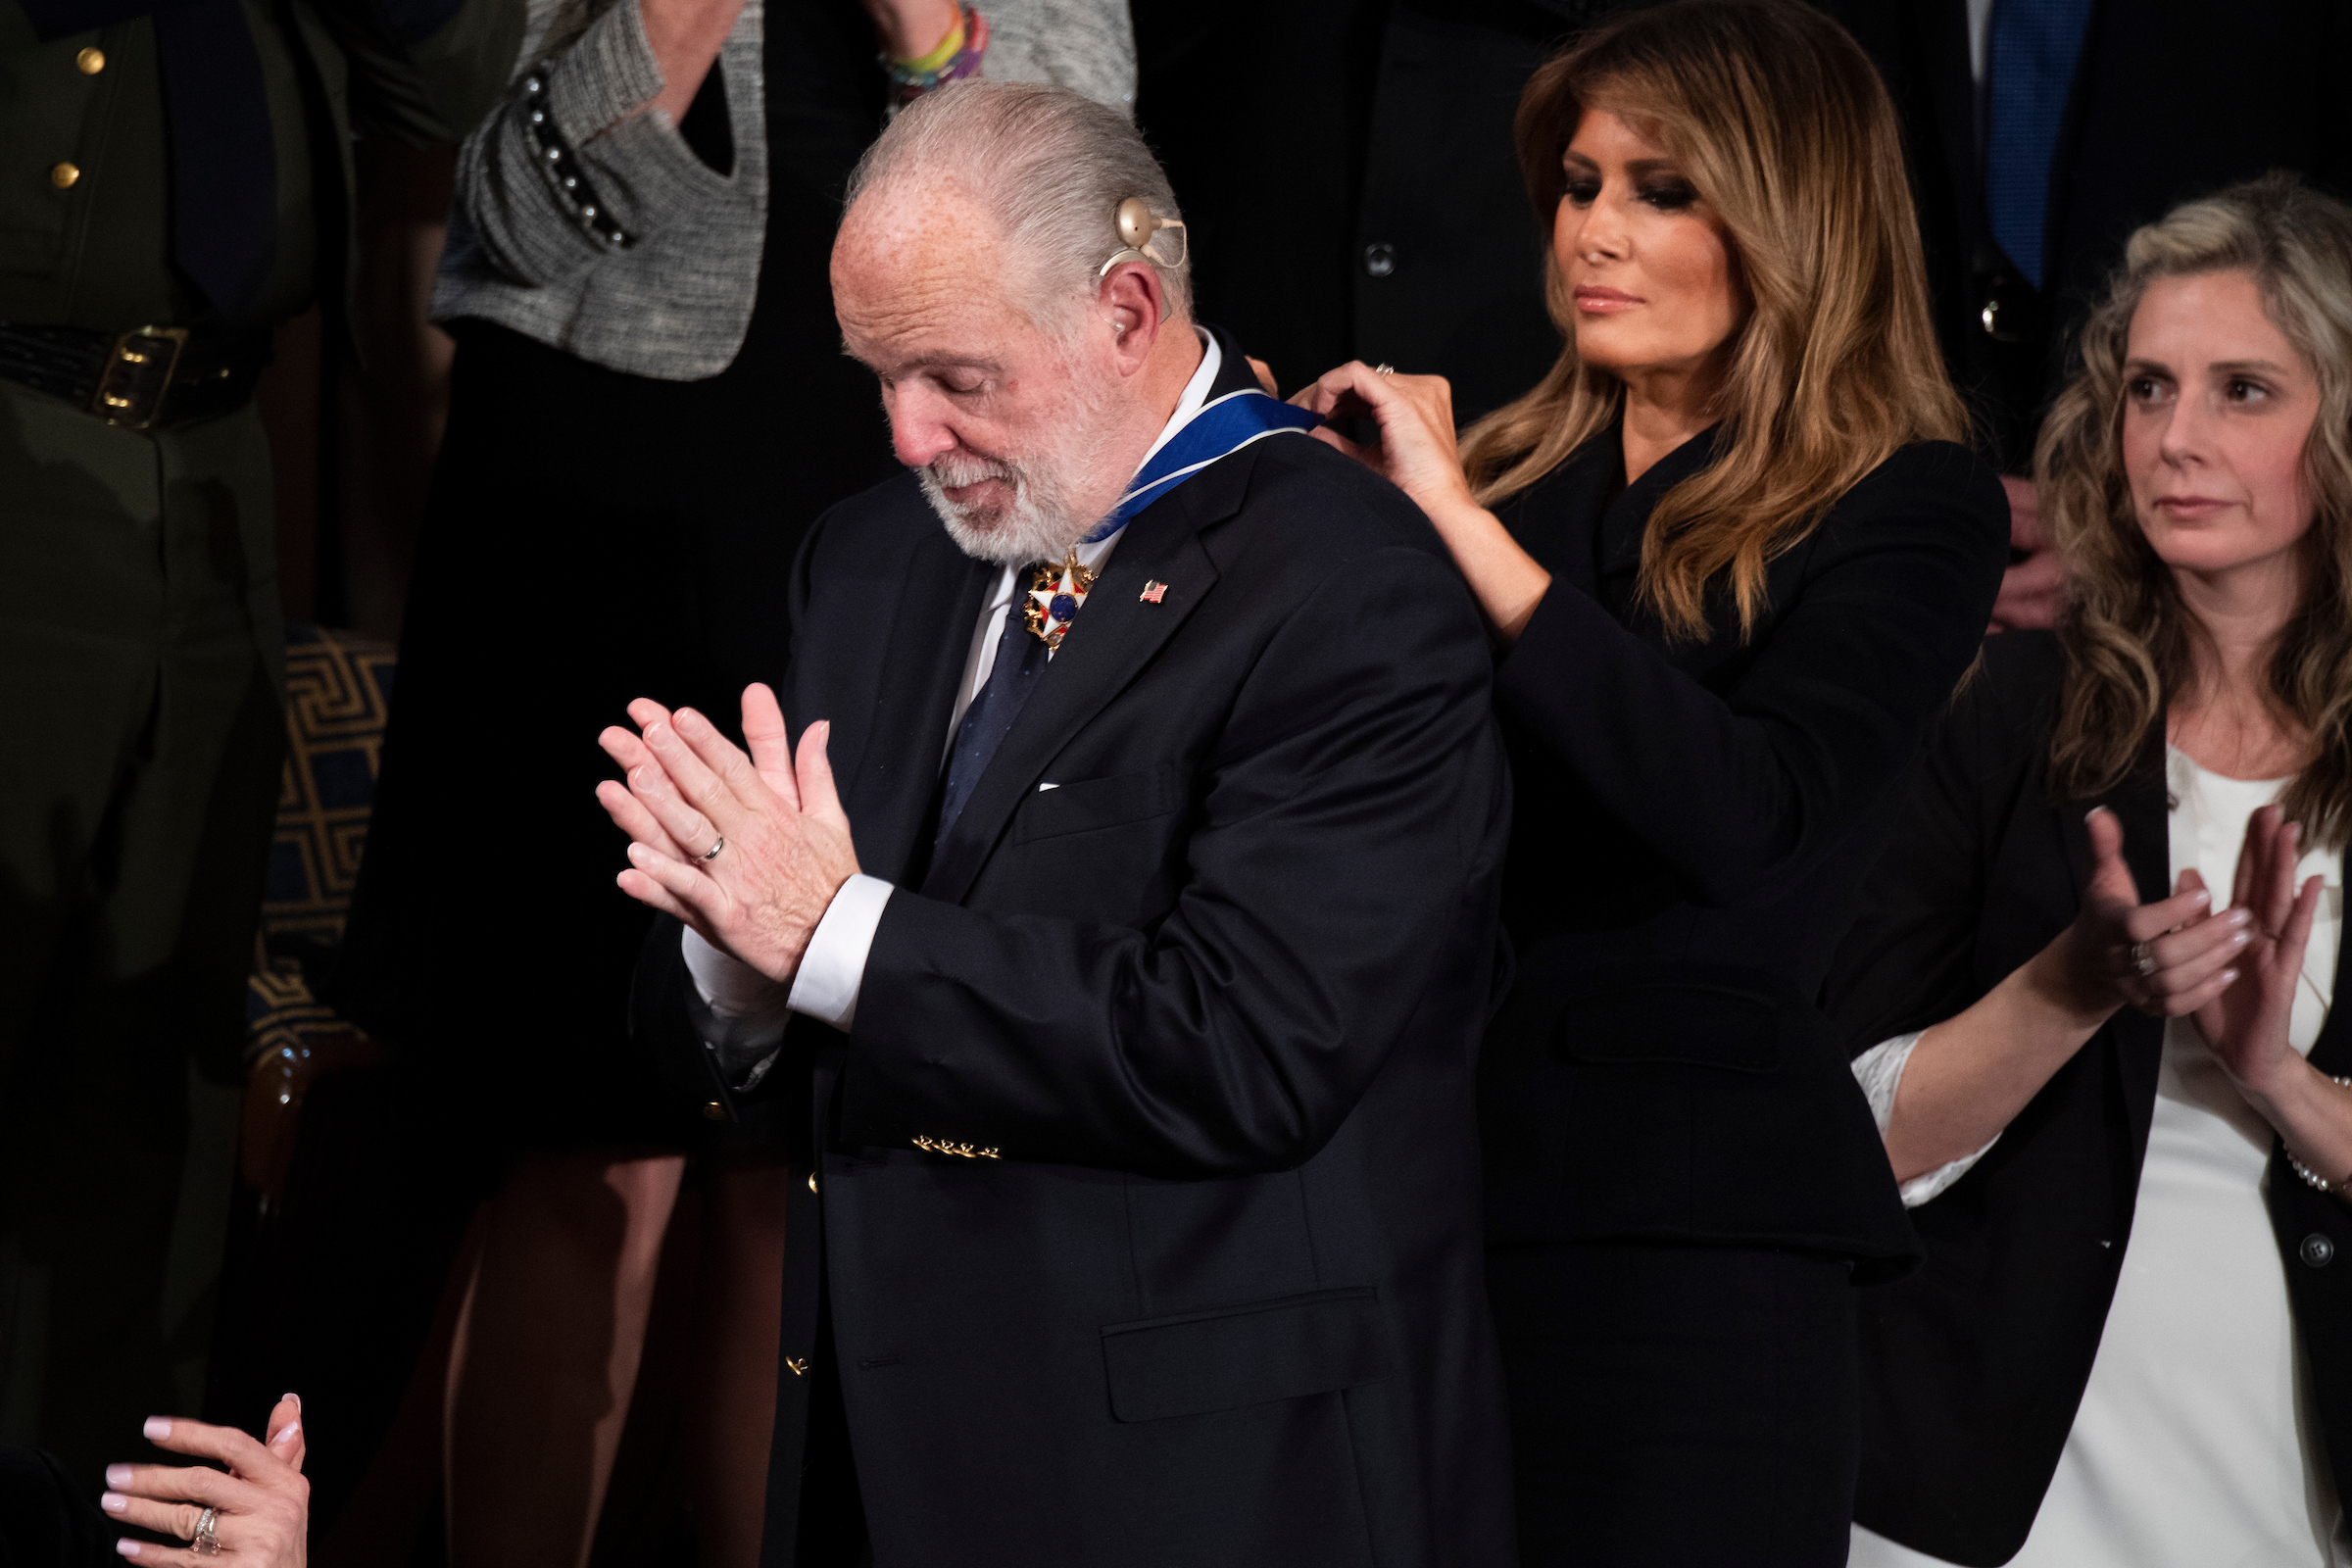 UNITED STATES - FEBRUARY 04: First Lady Melania Trump awards Rush Limbaugh the Presidential Medal of Freedom during President Donald Trump's State of the Union address in the House Chamber on Tuesday, February 4, 2020. (Photo By Tom Williams/CQ Roll Call)